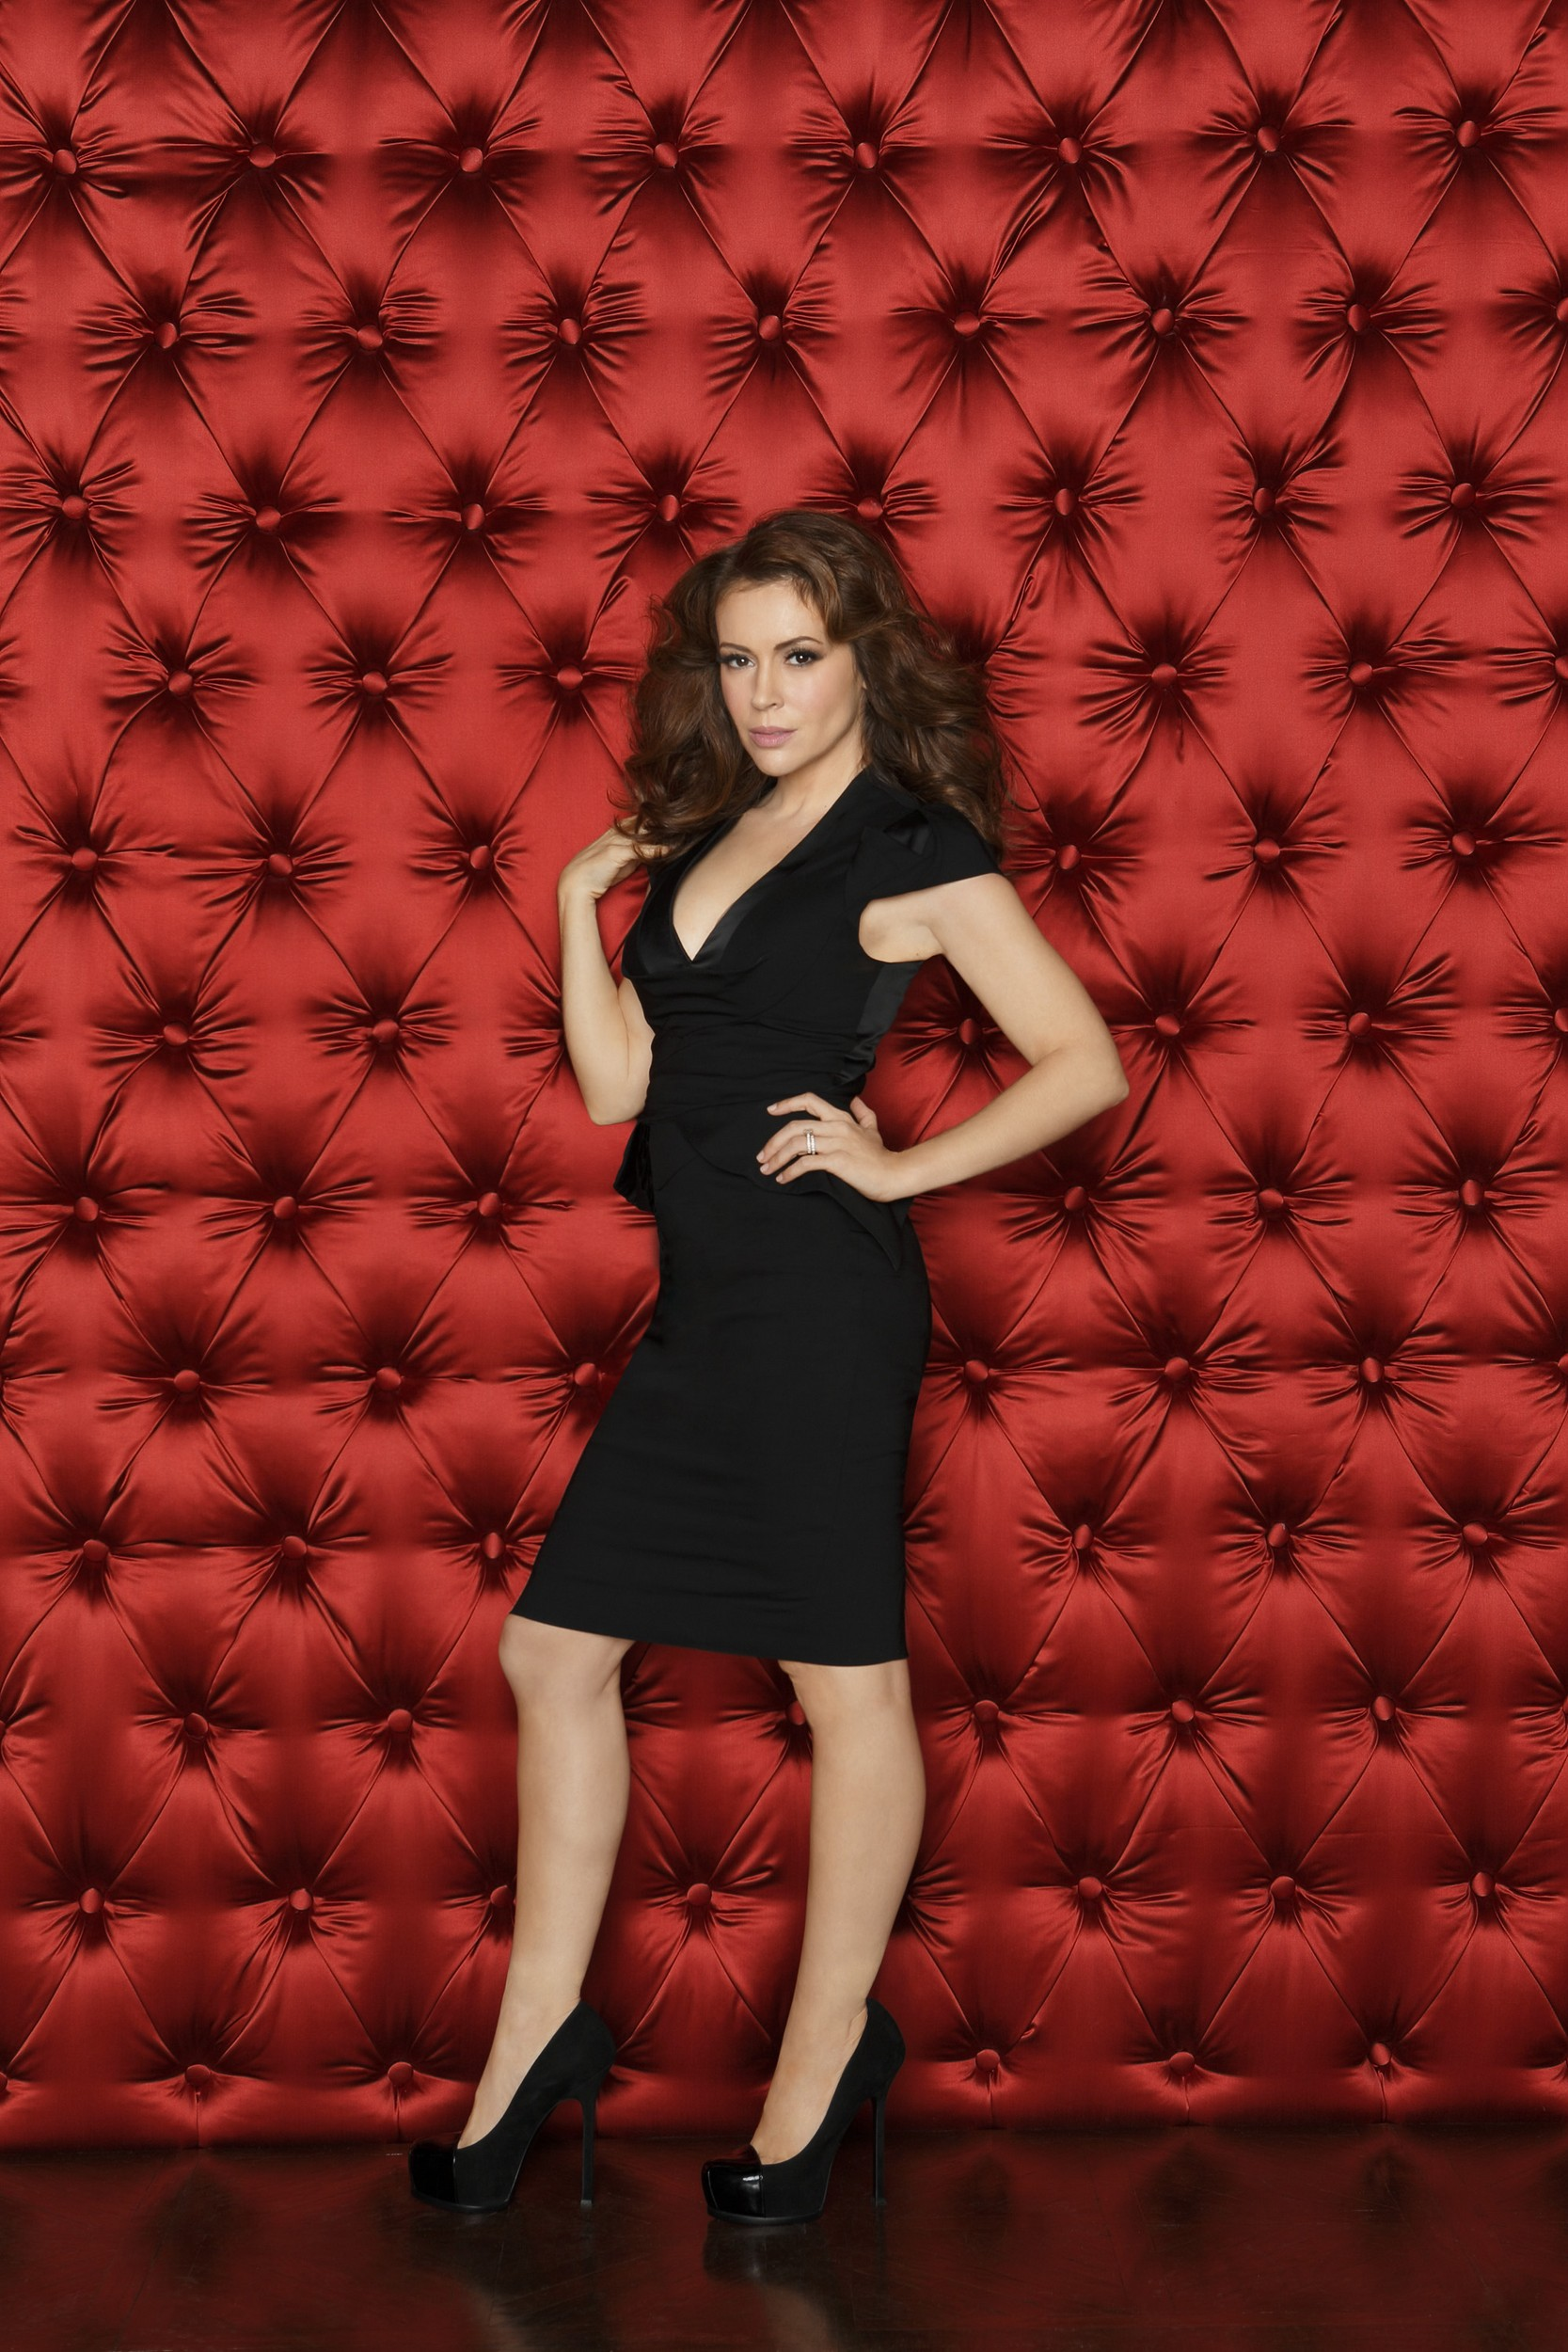 Alyssa Milano etcMistresses S01 - 2013 HD 720 naked (86 photos), Is a cute Celebrity image